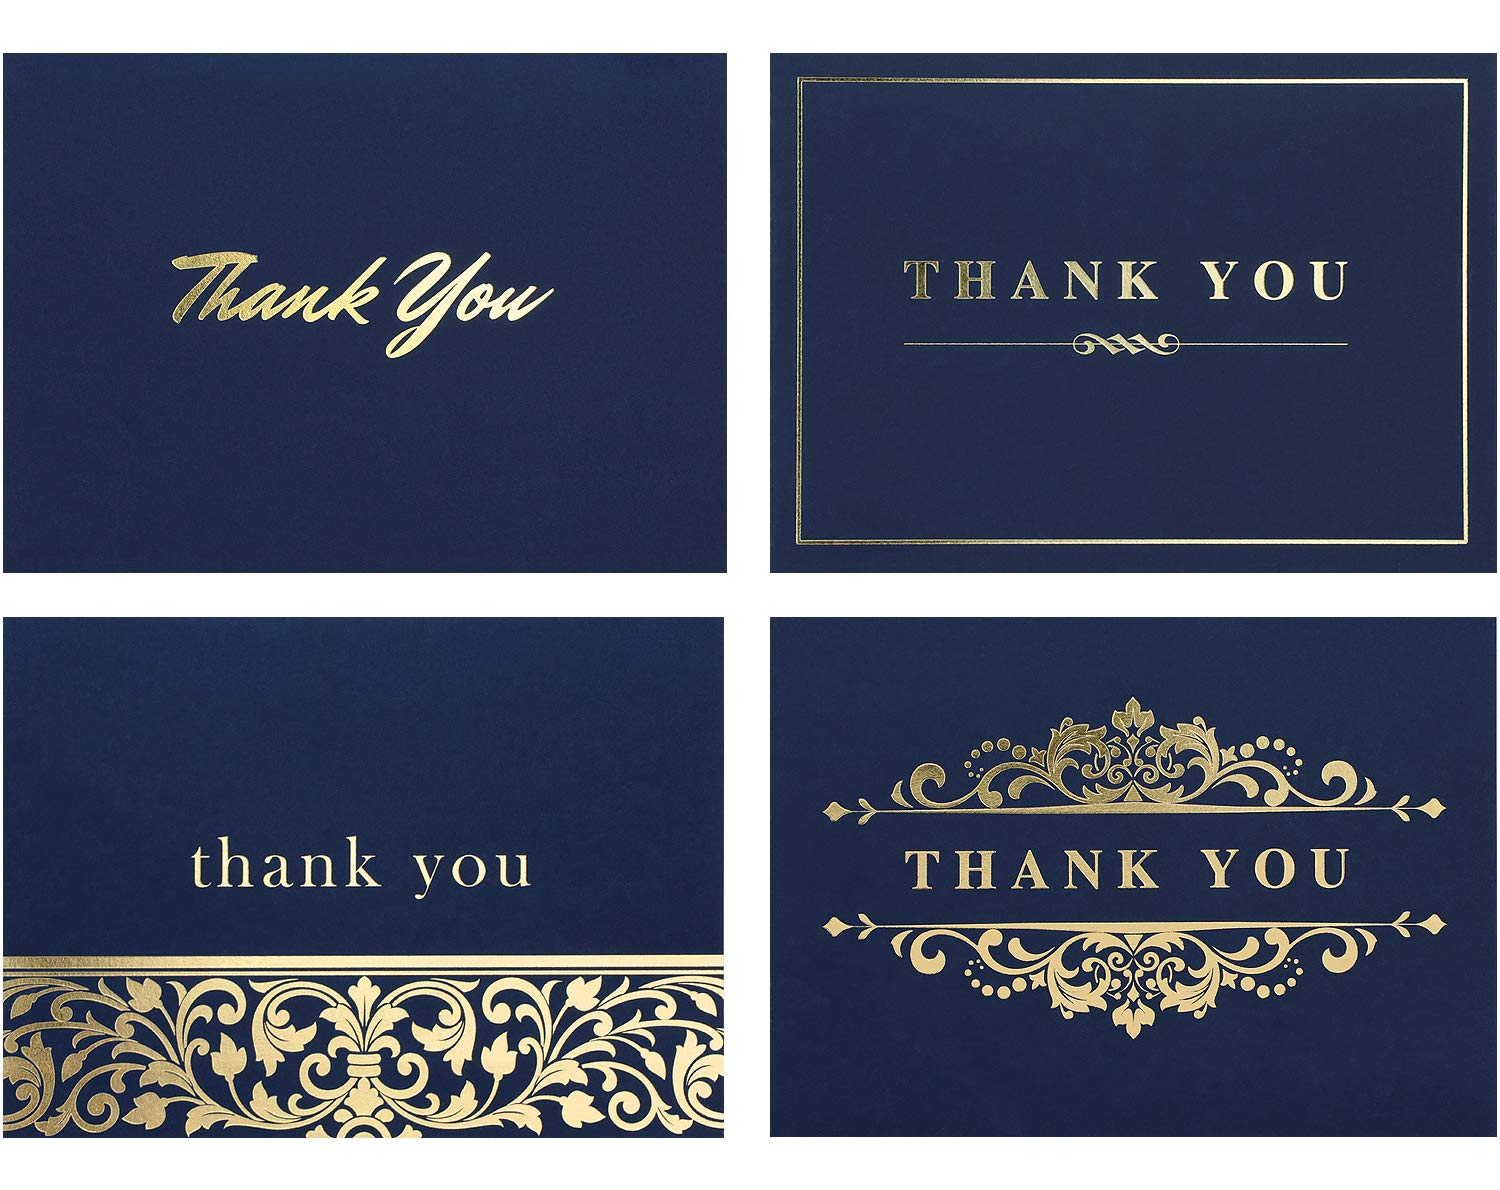 100 Thank You Cards by Spark Ink - Blank Thank You Notes with Envelopes - Bulk Pack of Stunning Navy and Gold Foil Designs - Ideal for Business, Graduation, Wedding, Bridal and Baby Shower (navy)